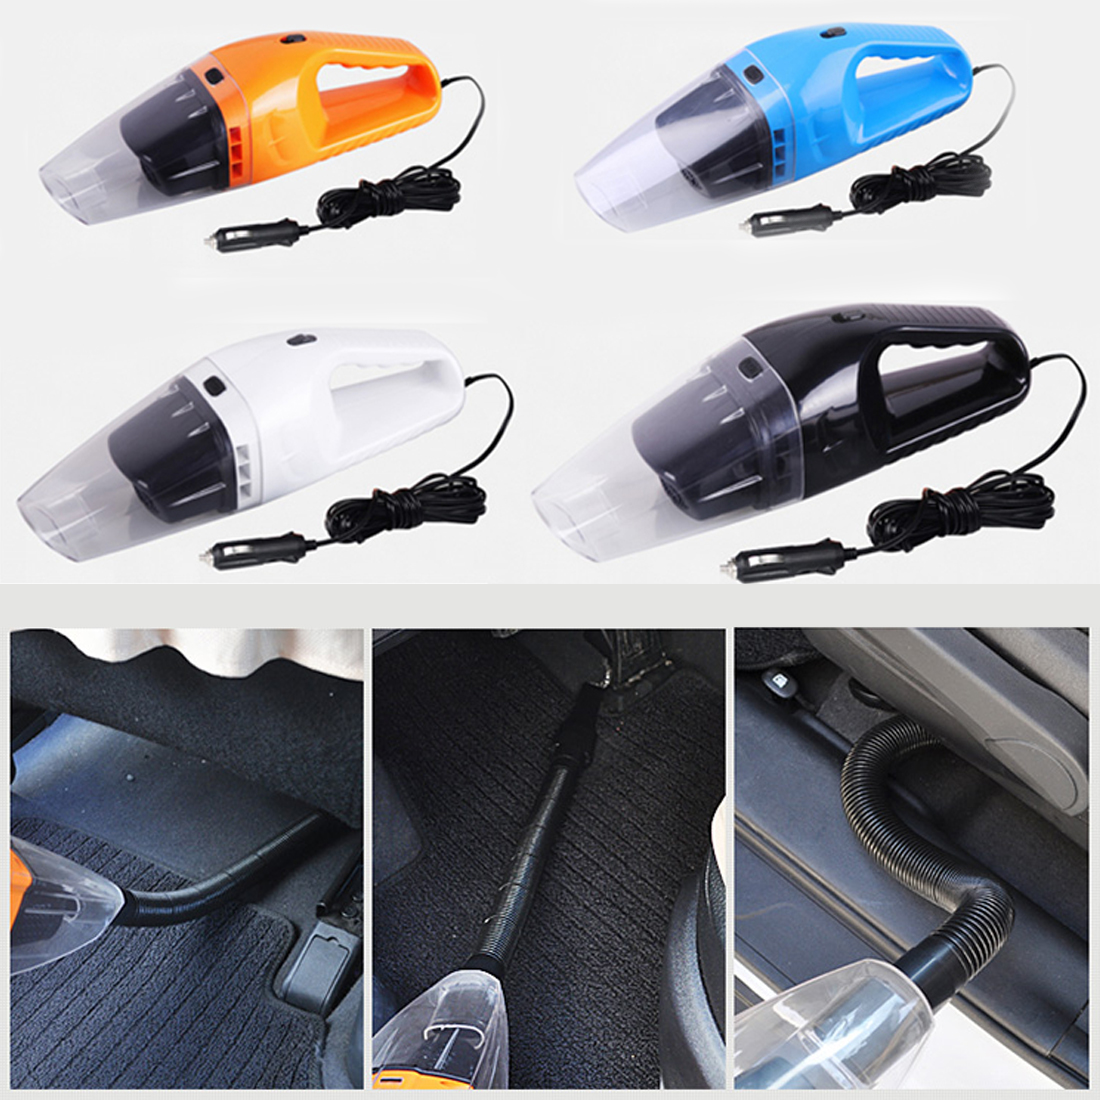 Hot Portable Car Vacuum Cleaner Wet And Dry Dual Use With Power 120W 12V 5 Meters Of Cable Super absorb Car Waste Auto Part(China (Mainland))